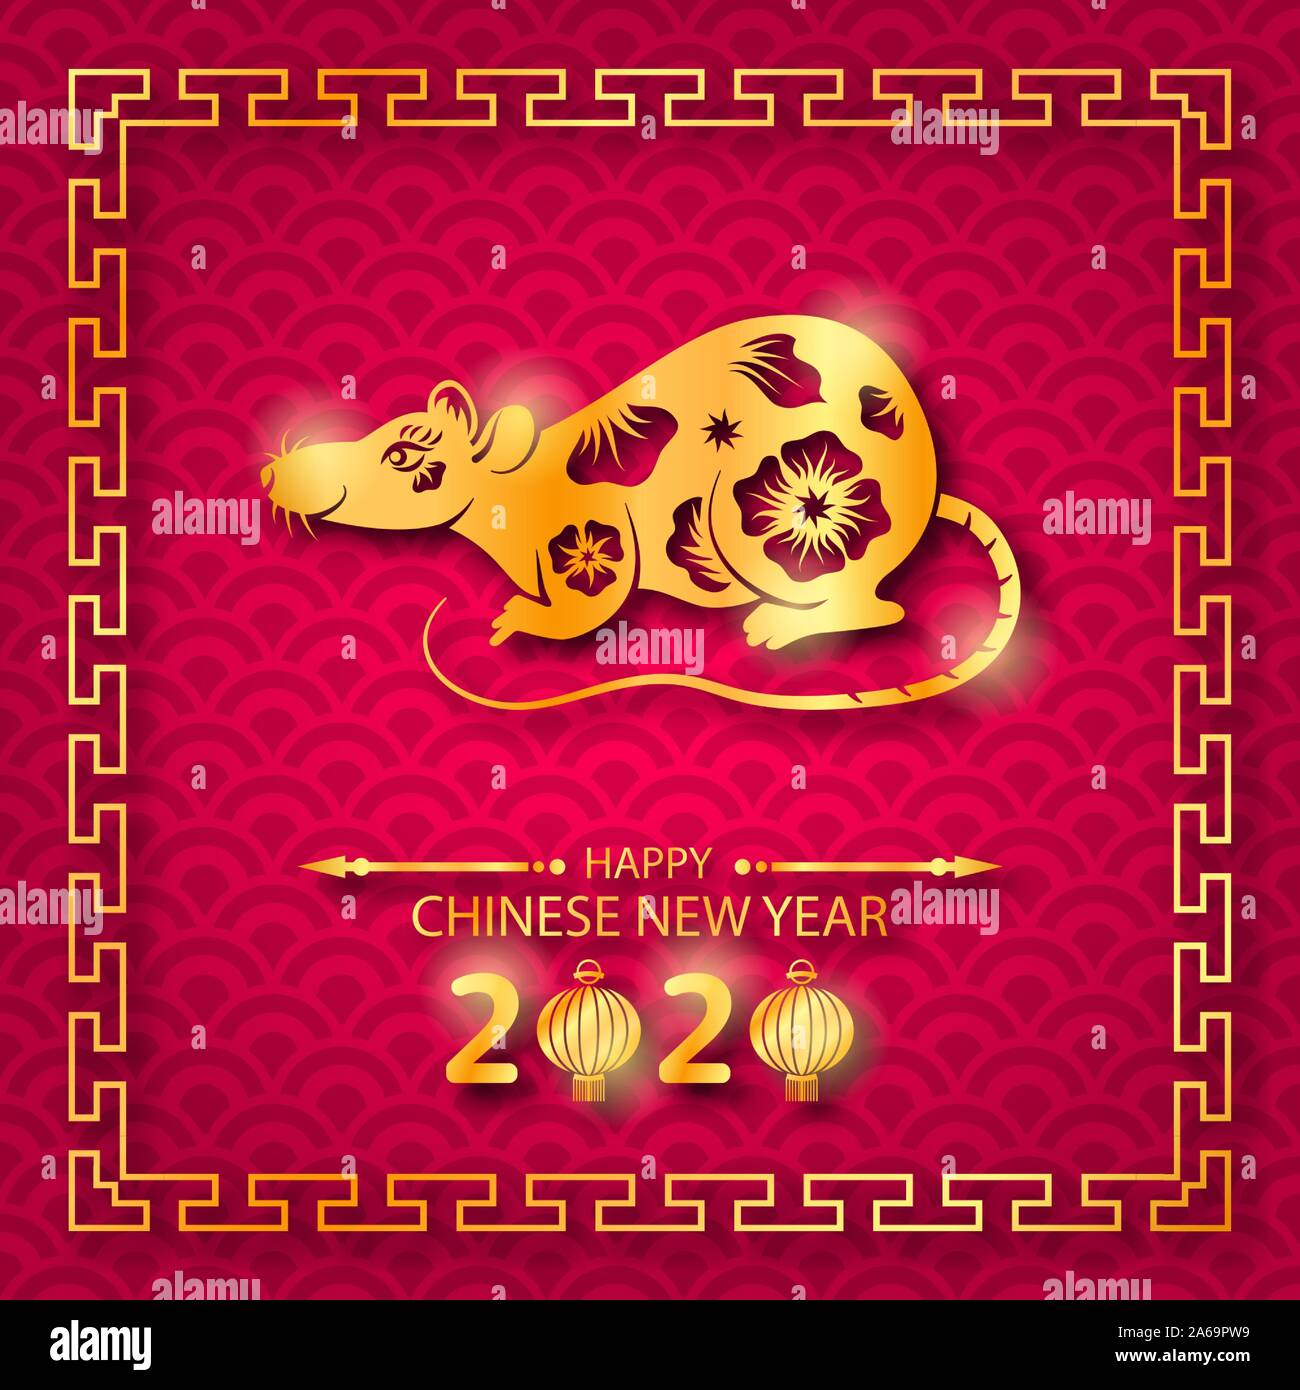 Happy Chinese New Year 2020 Card with Golden Rat Zodiac - Illustration Vector Stock Vector